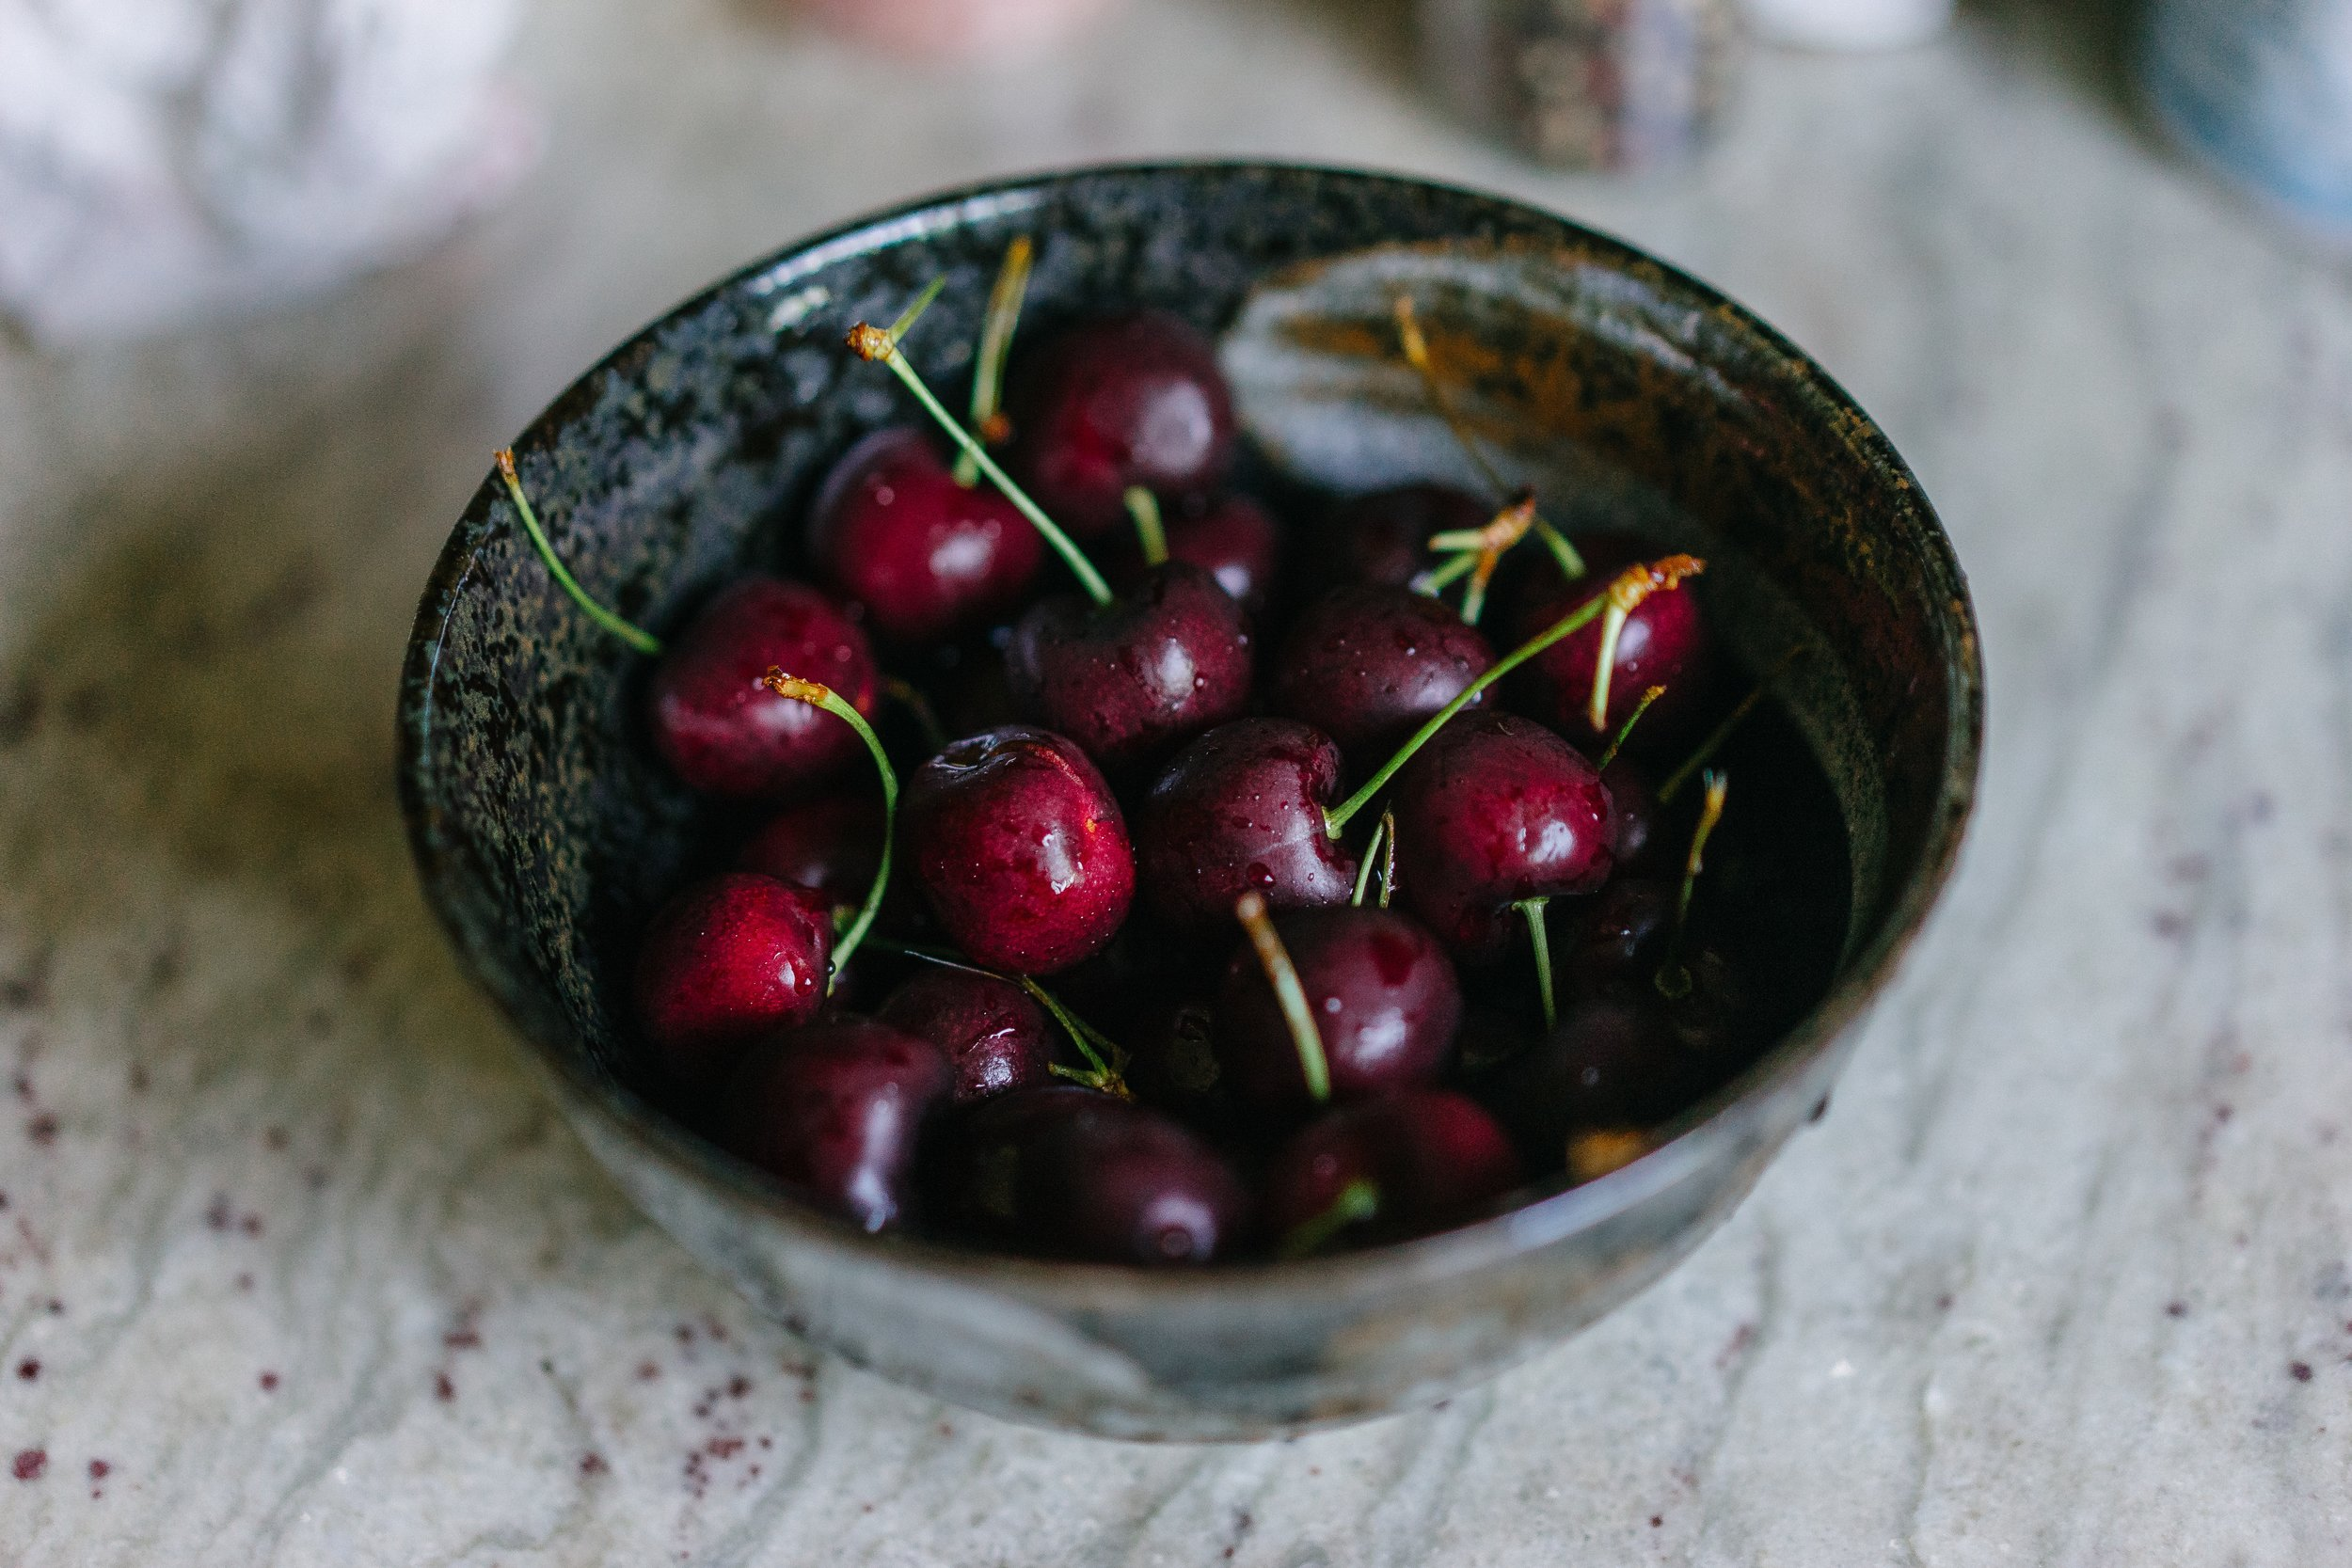 bowl-cherries-cherry-1283749.jpg